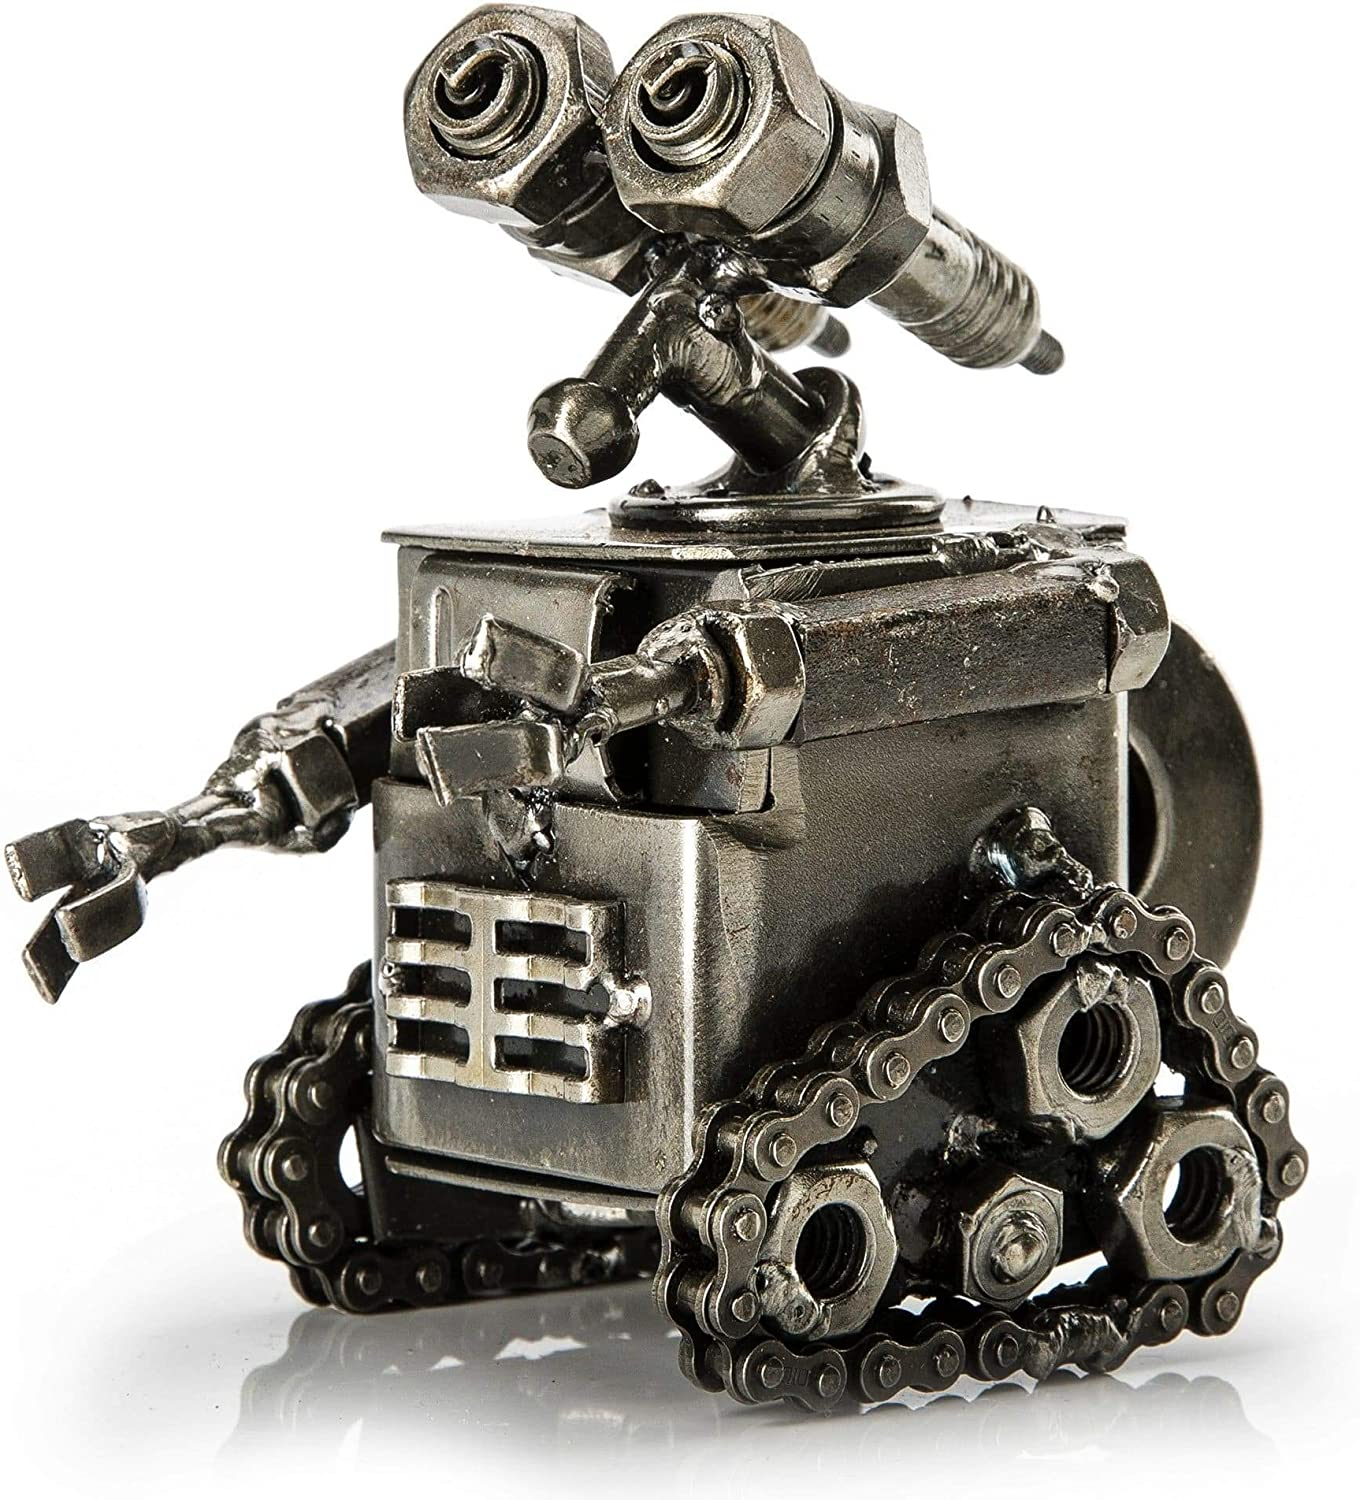 KALIFANO Wall-E Inspired Recycled Metal Sculpture Handcrafted fr